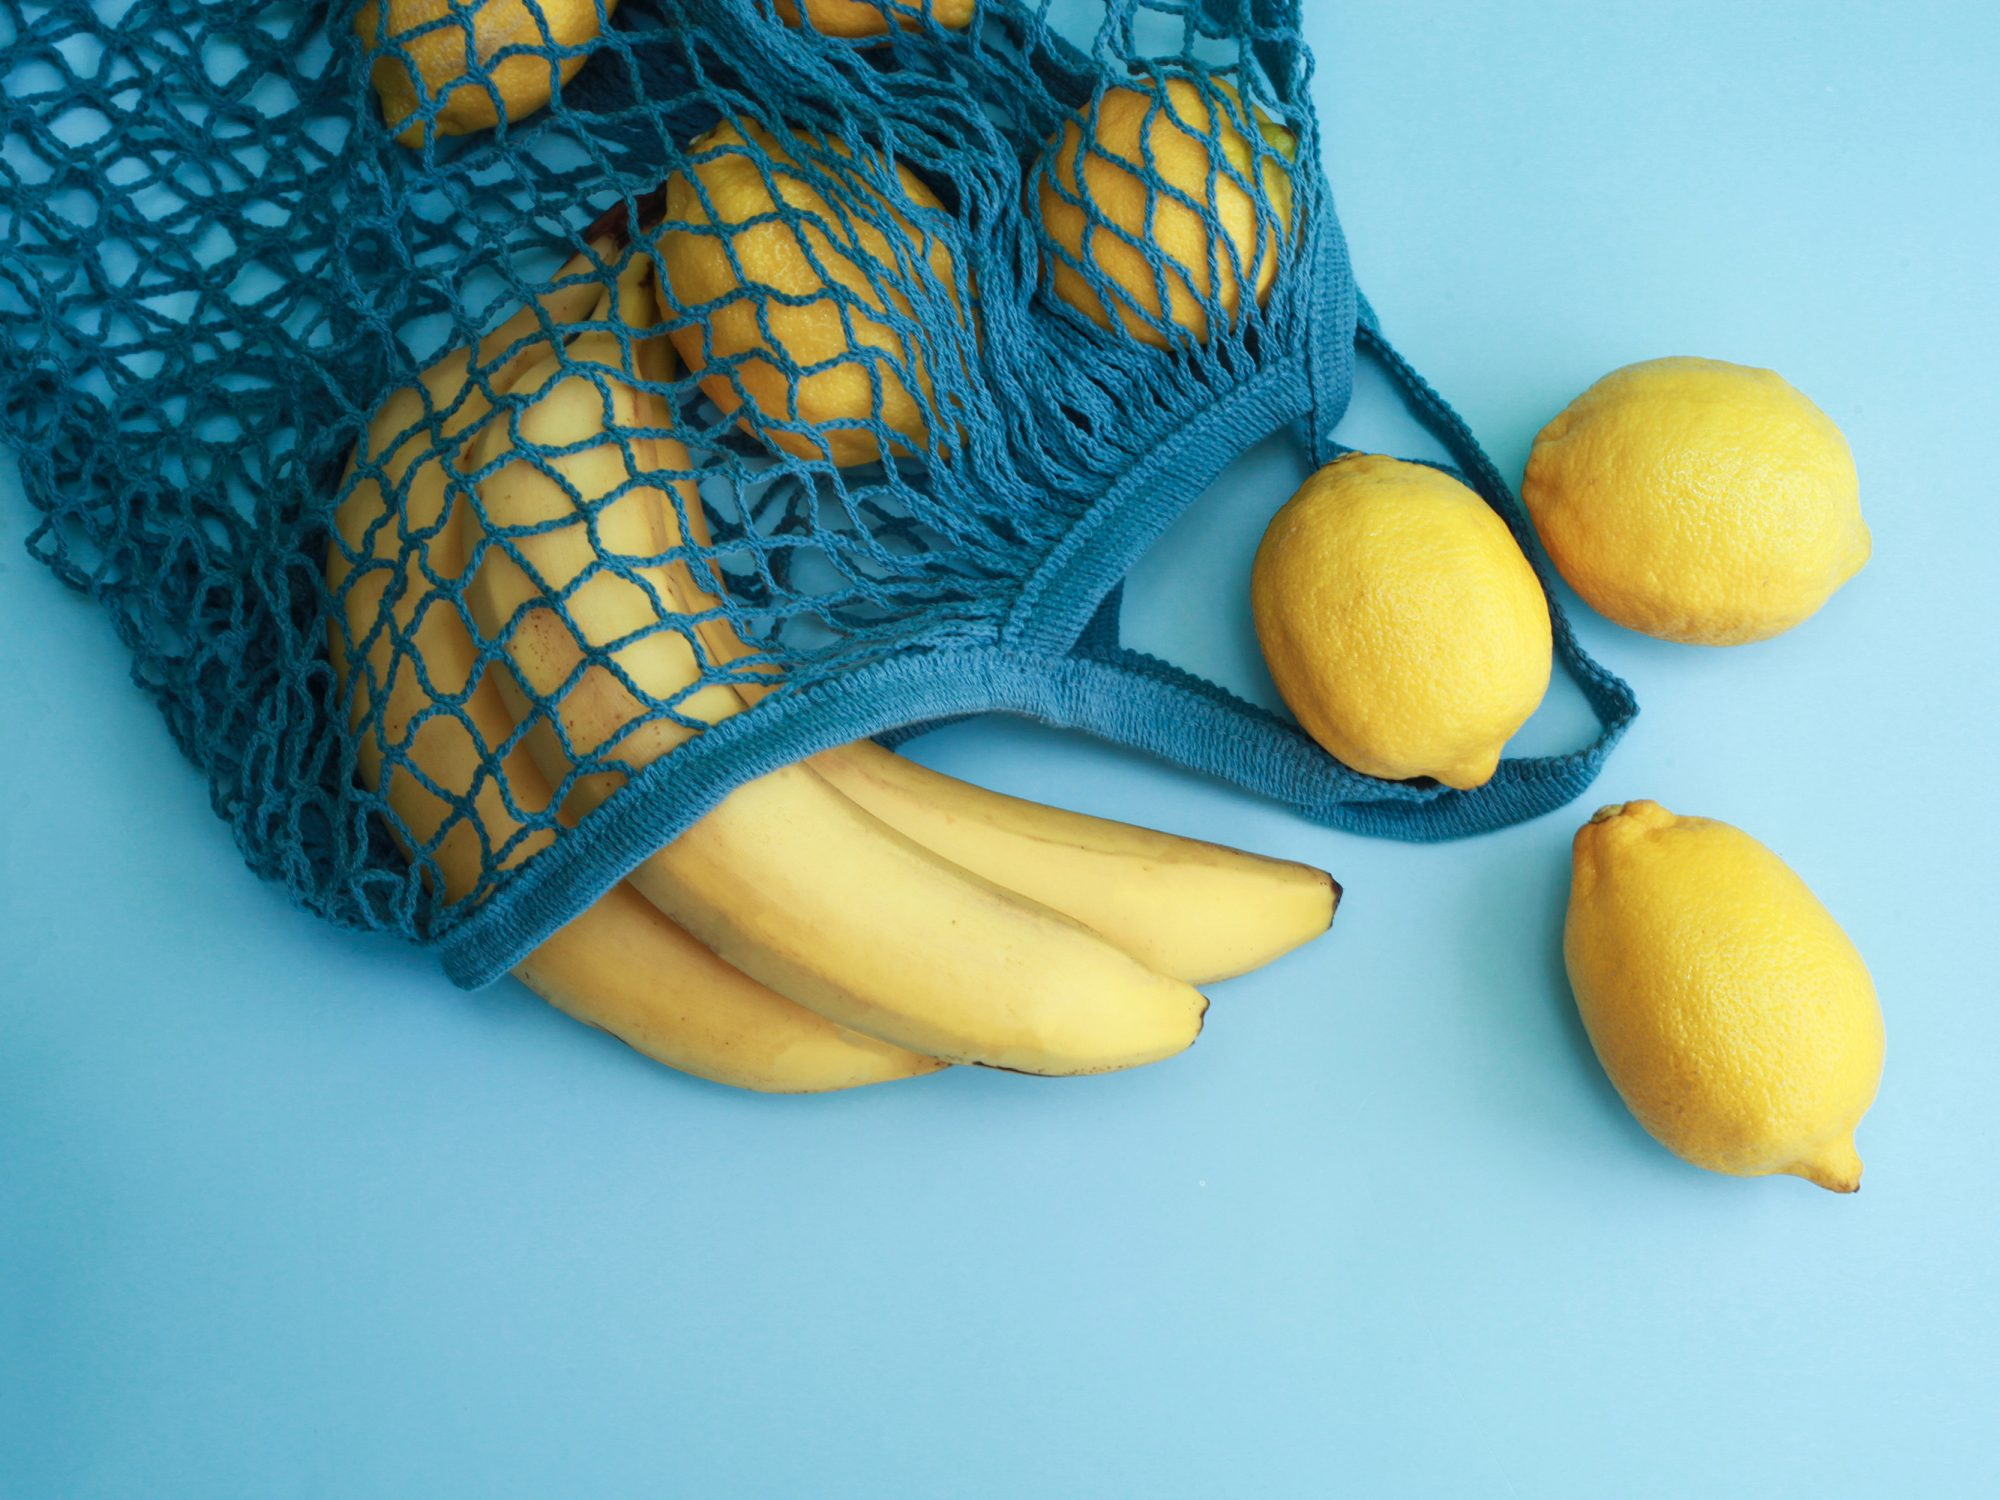 Lemon yellow fruits in blue mesh bag over blue background with copy space